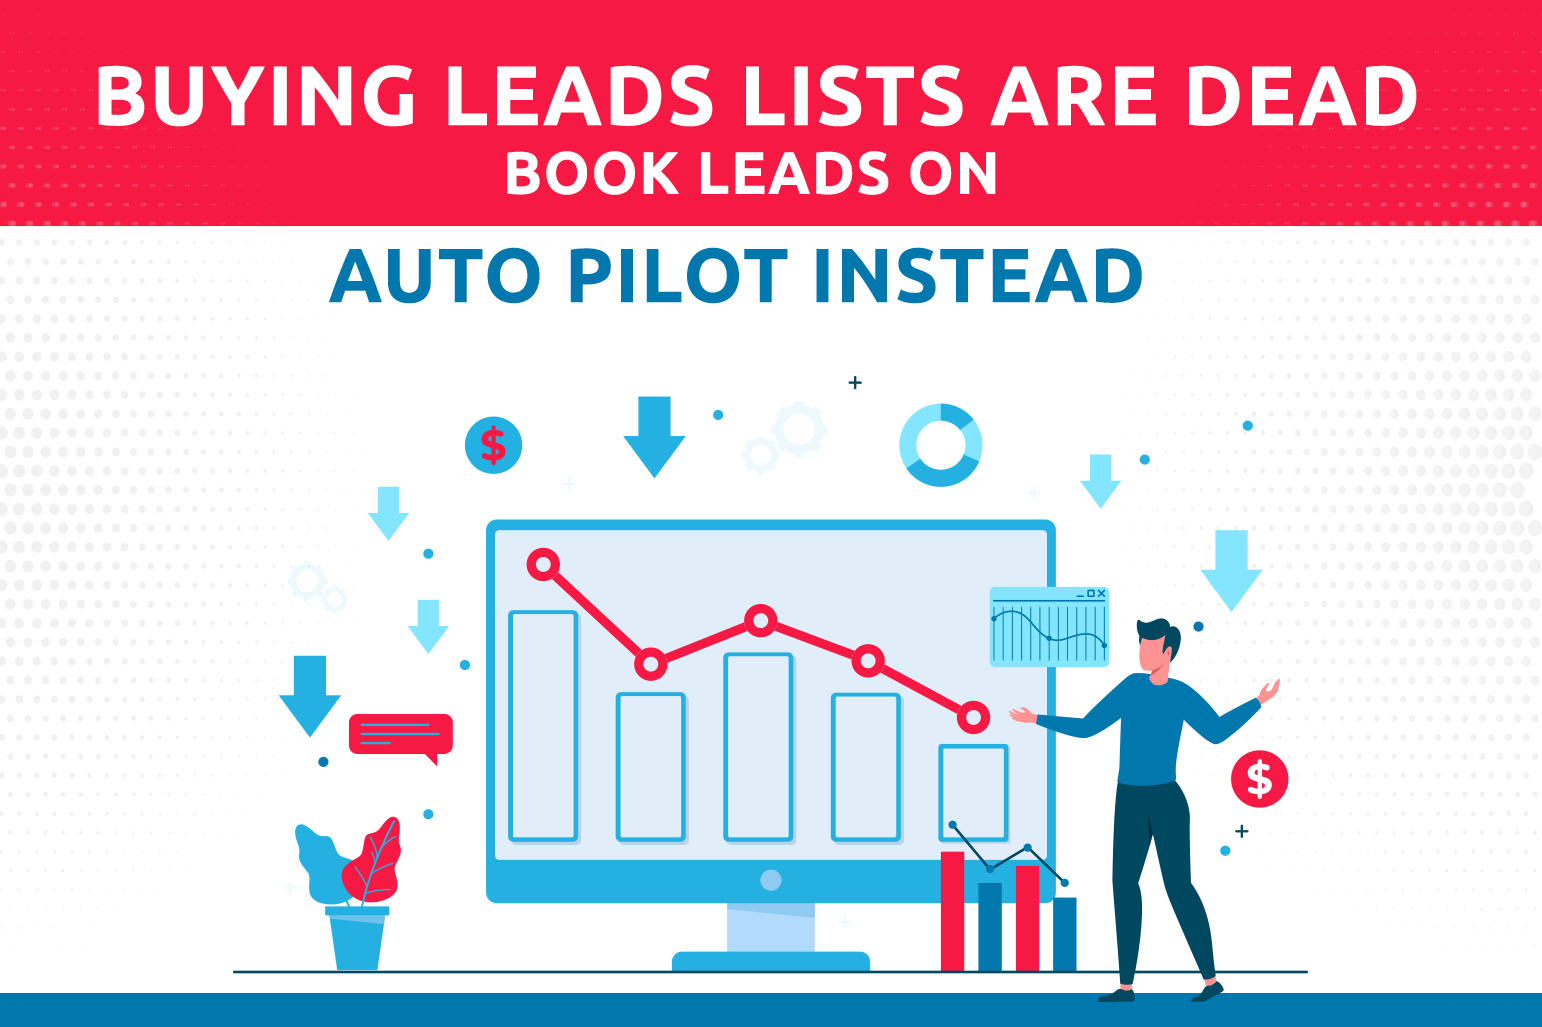 Buying Leads Lists Are Dead: Book Leads On Auto-Pilot Instead